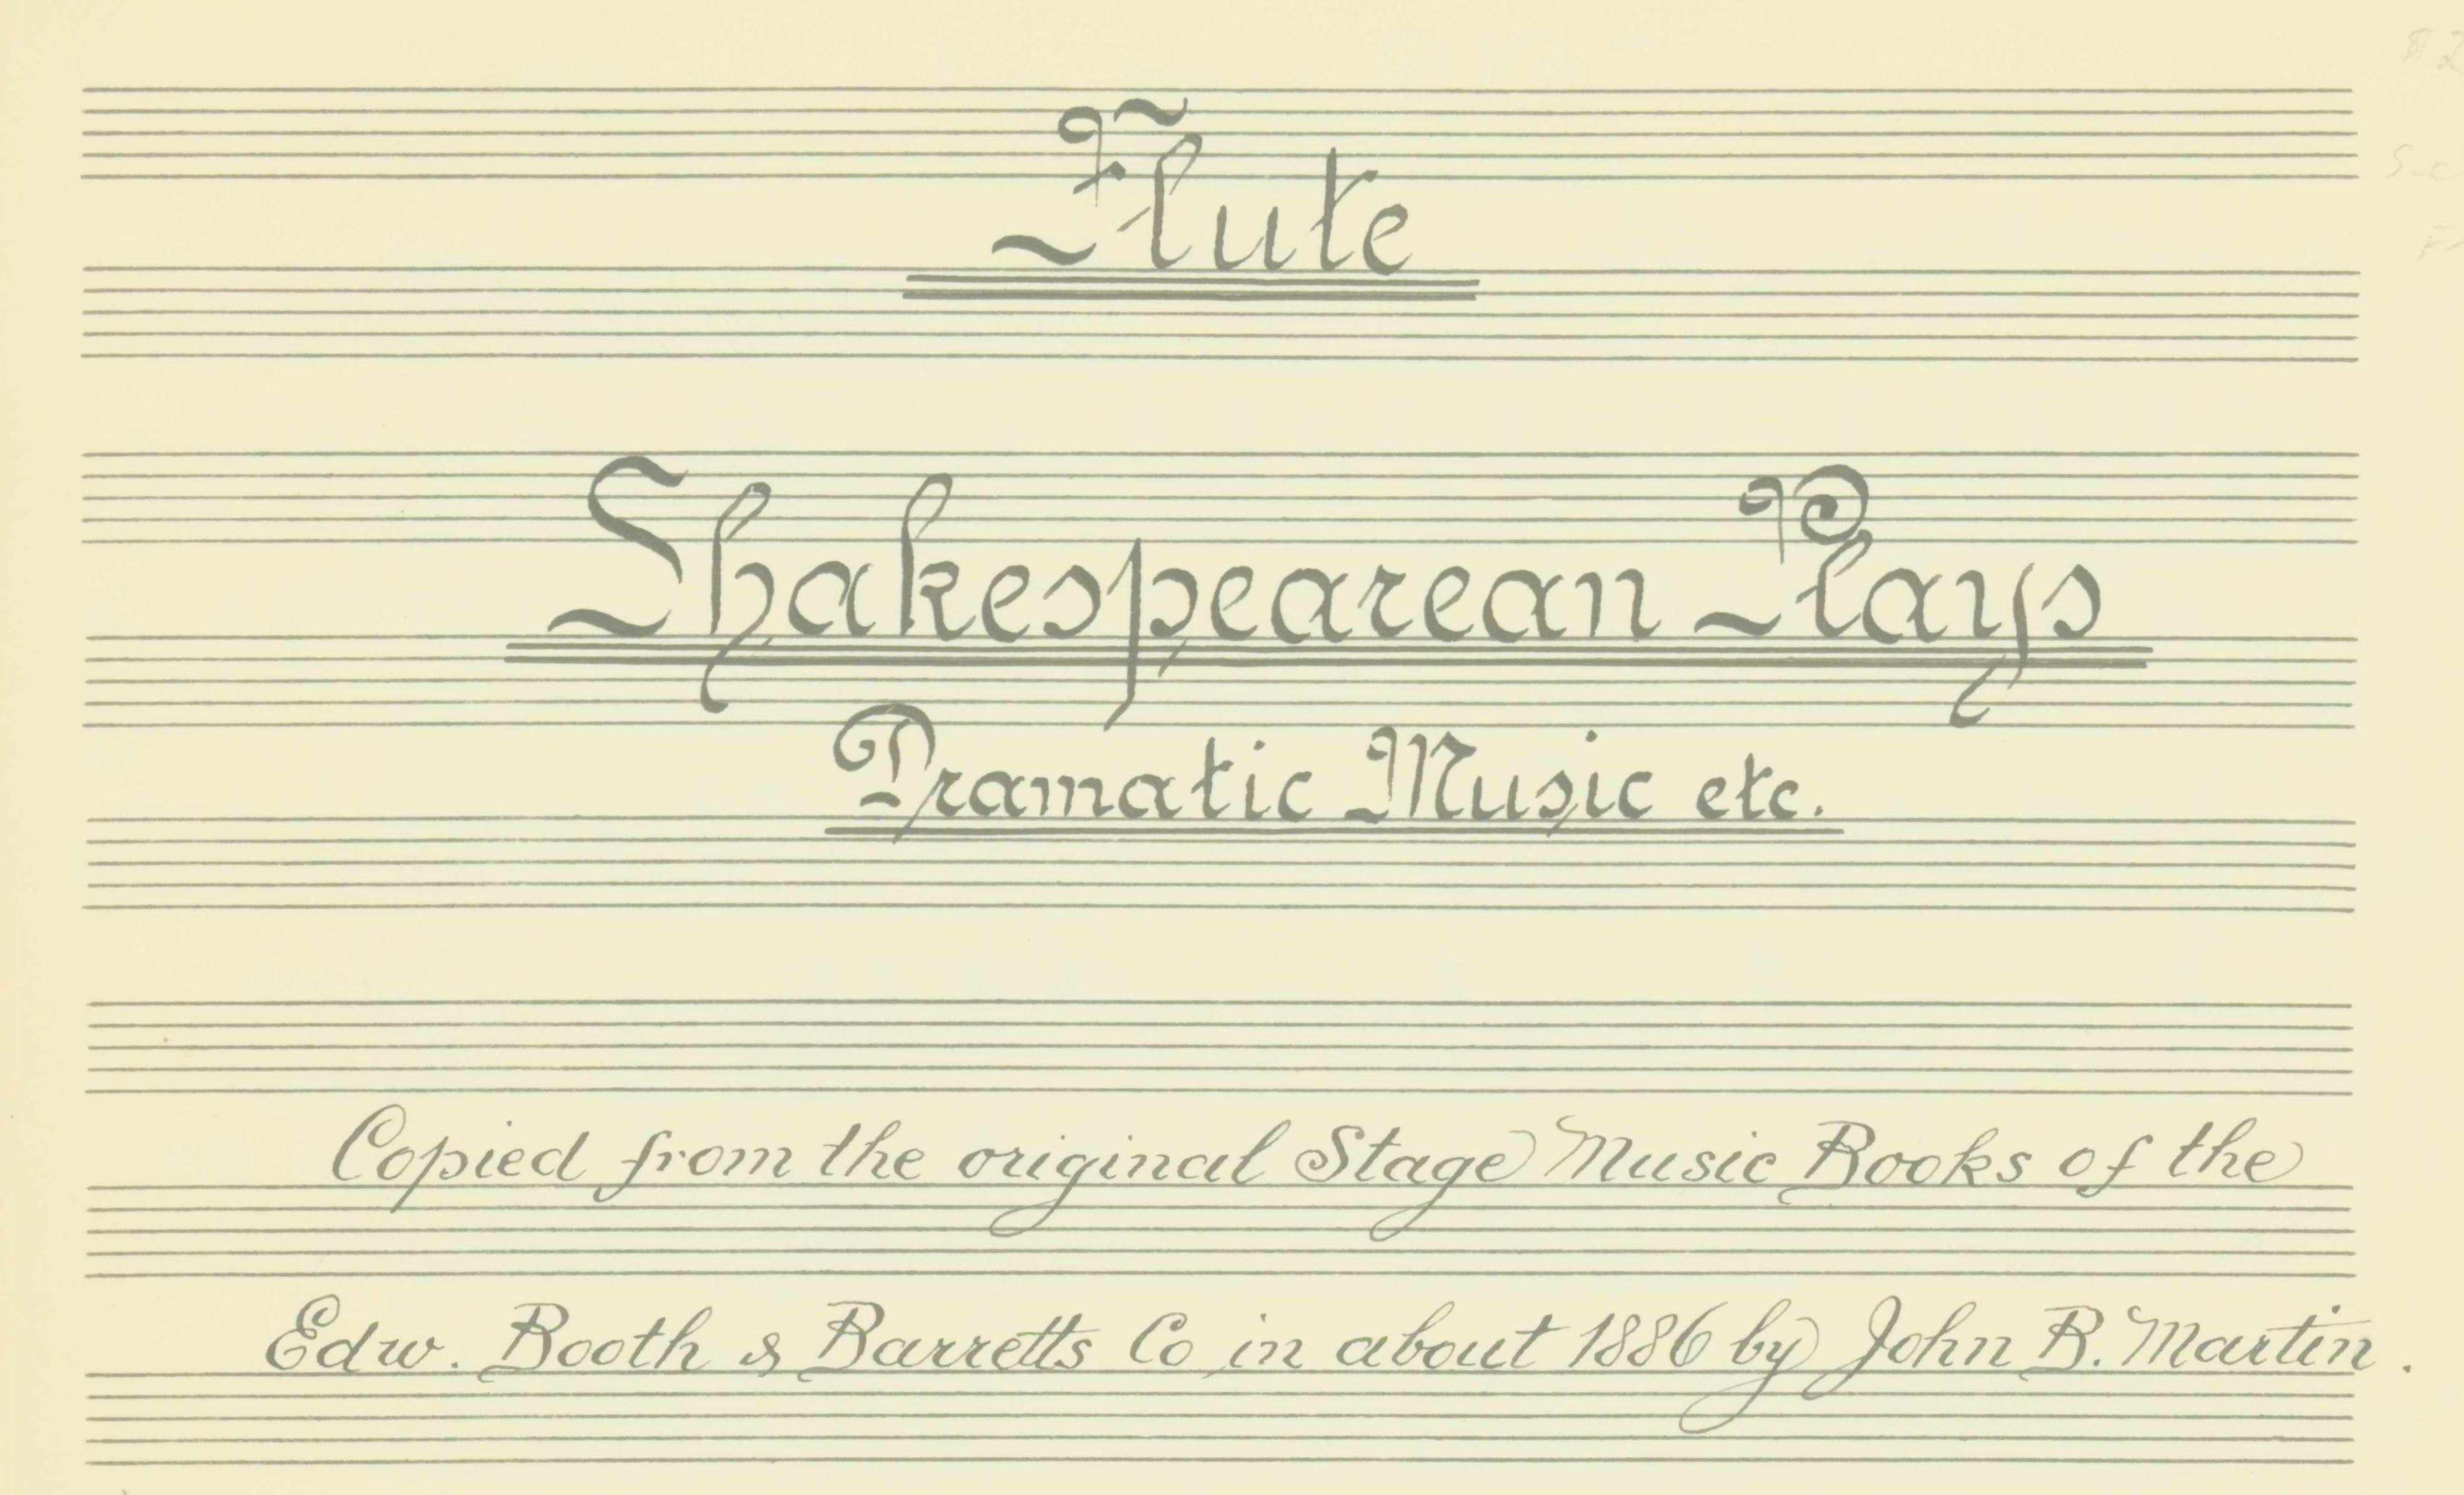 Shakespeare - Incidental Music For Plays - Shakespearean Plays. Dramatic Music Etc. Flute... - (7000)